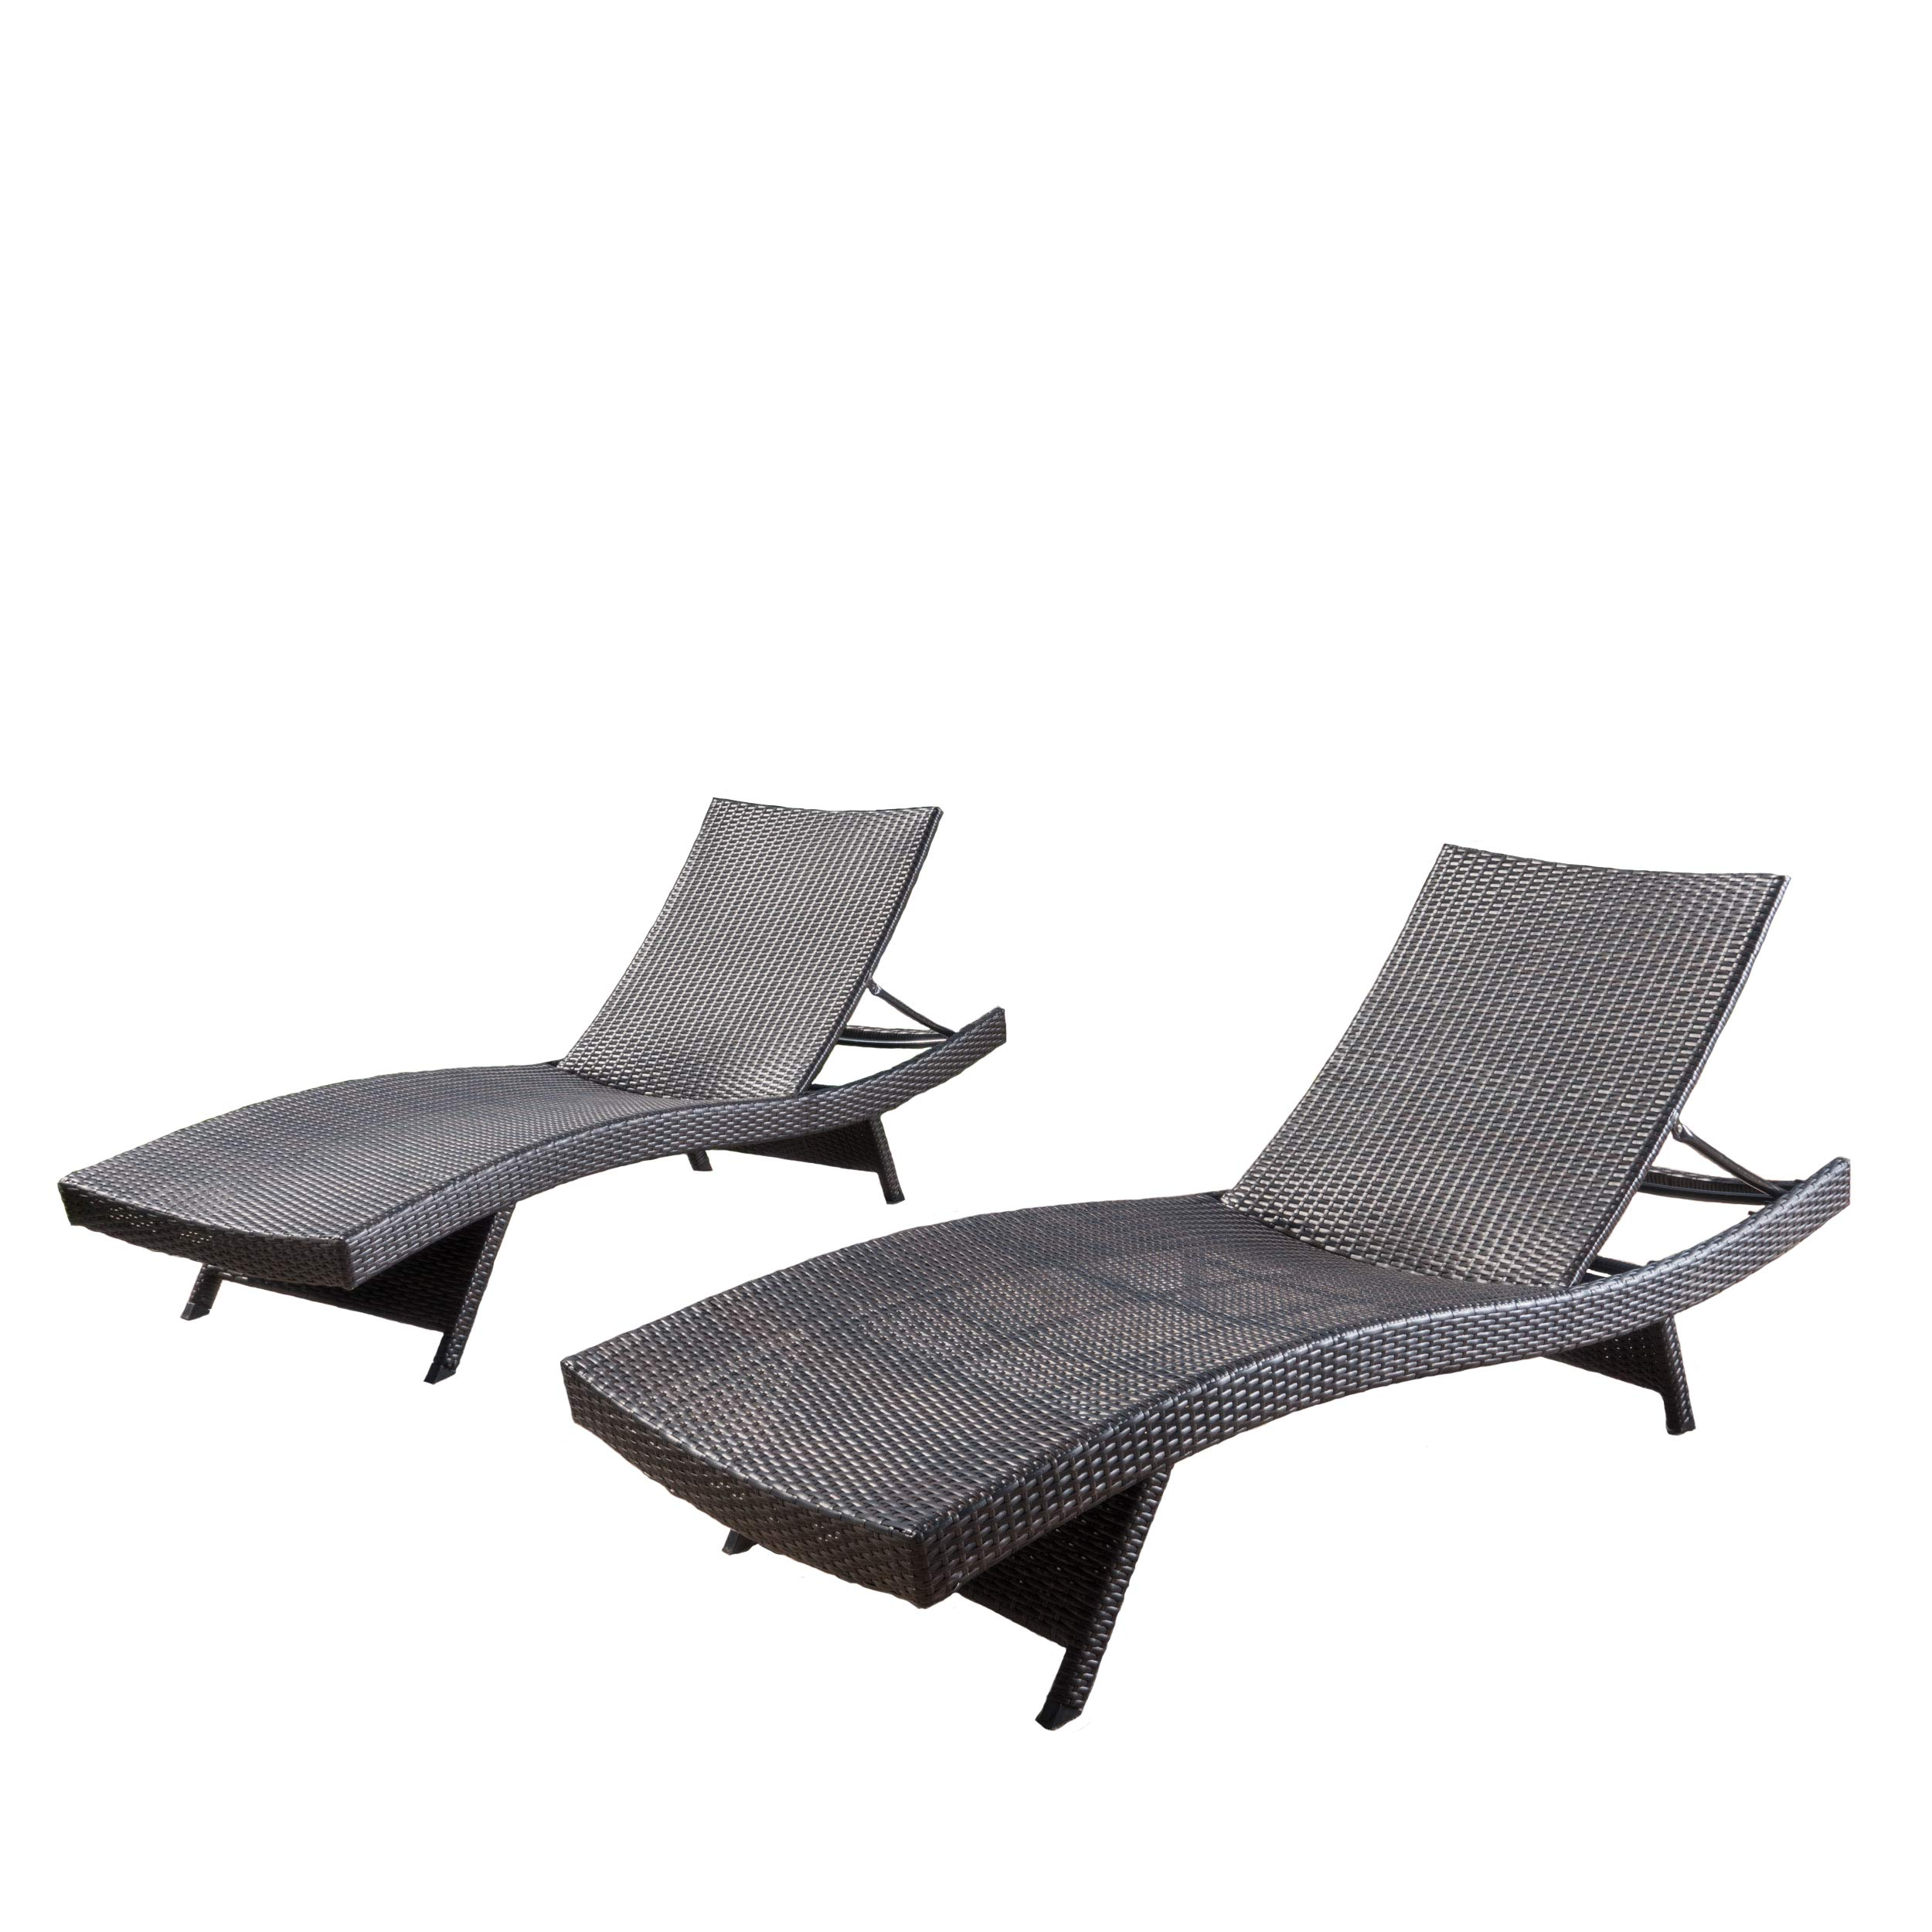 Christopher Knight Home 294919 Lakeport Outdoor Adjustable Chaise Lounge Chair (Set of 2) by Christopher Knight Home